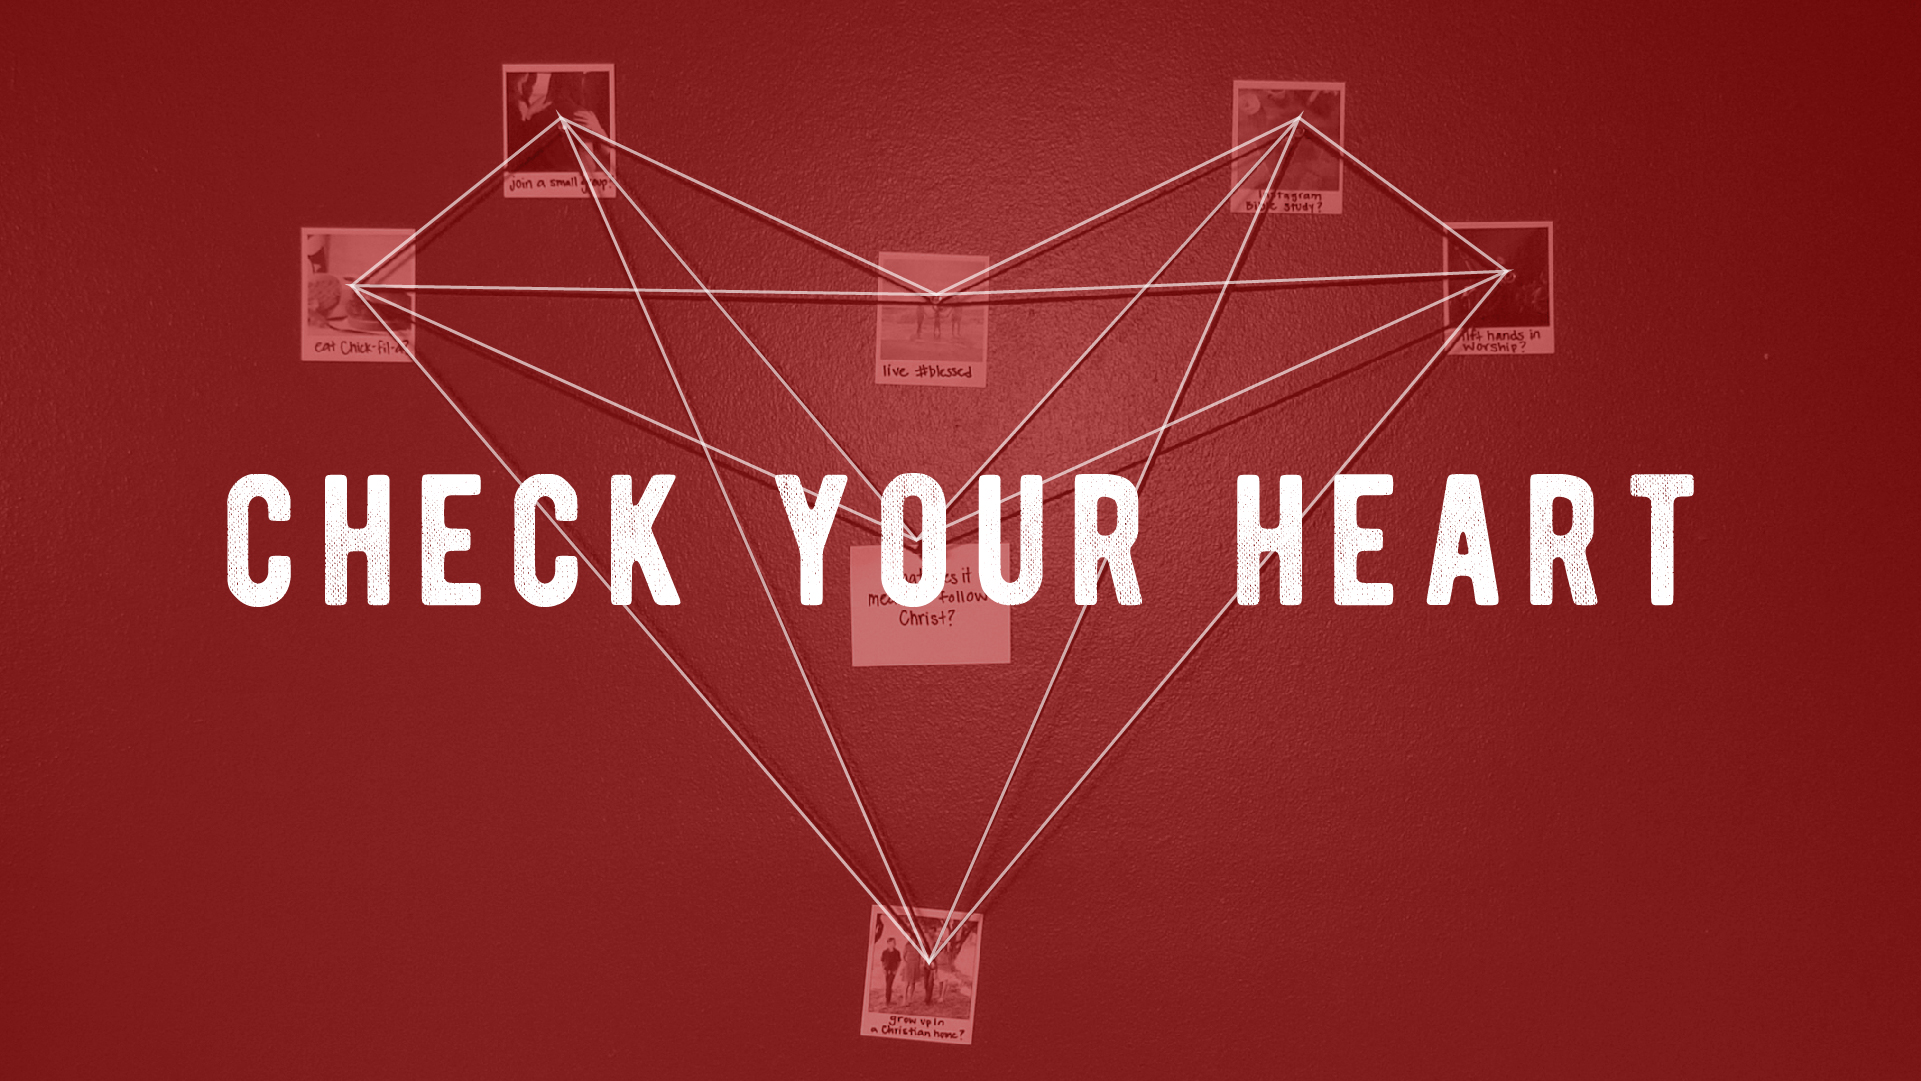 Check Your Heart: Skin in the Game